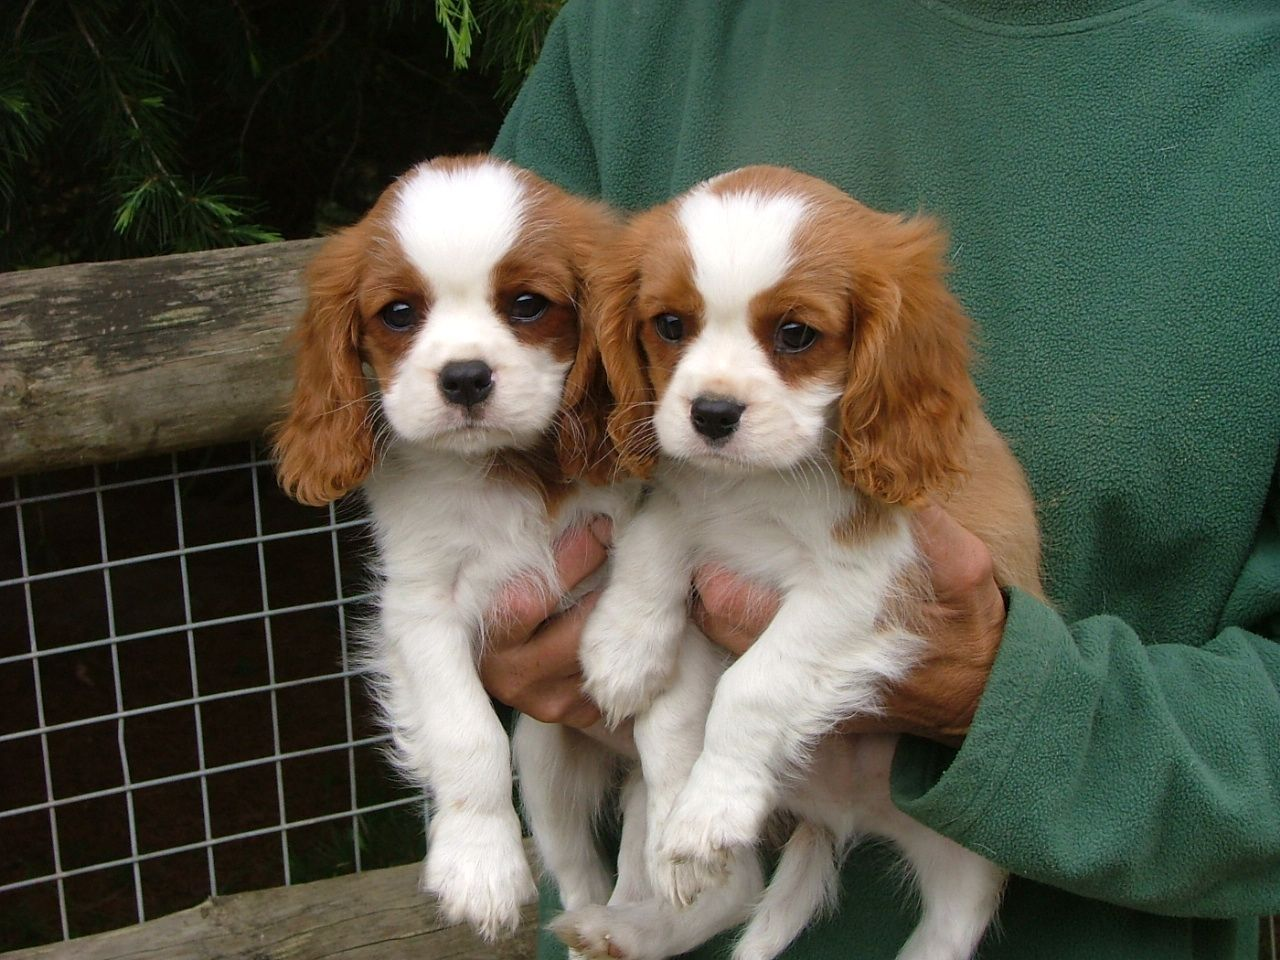 Craigslist Chihuahua Puppies King Charles Puppy Cavalier King